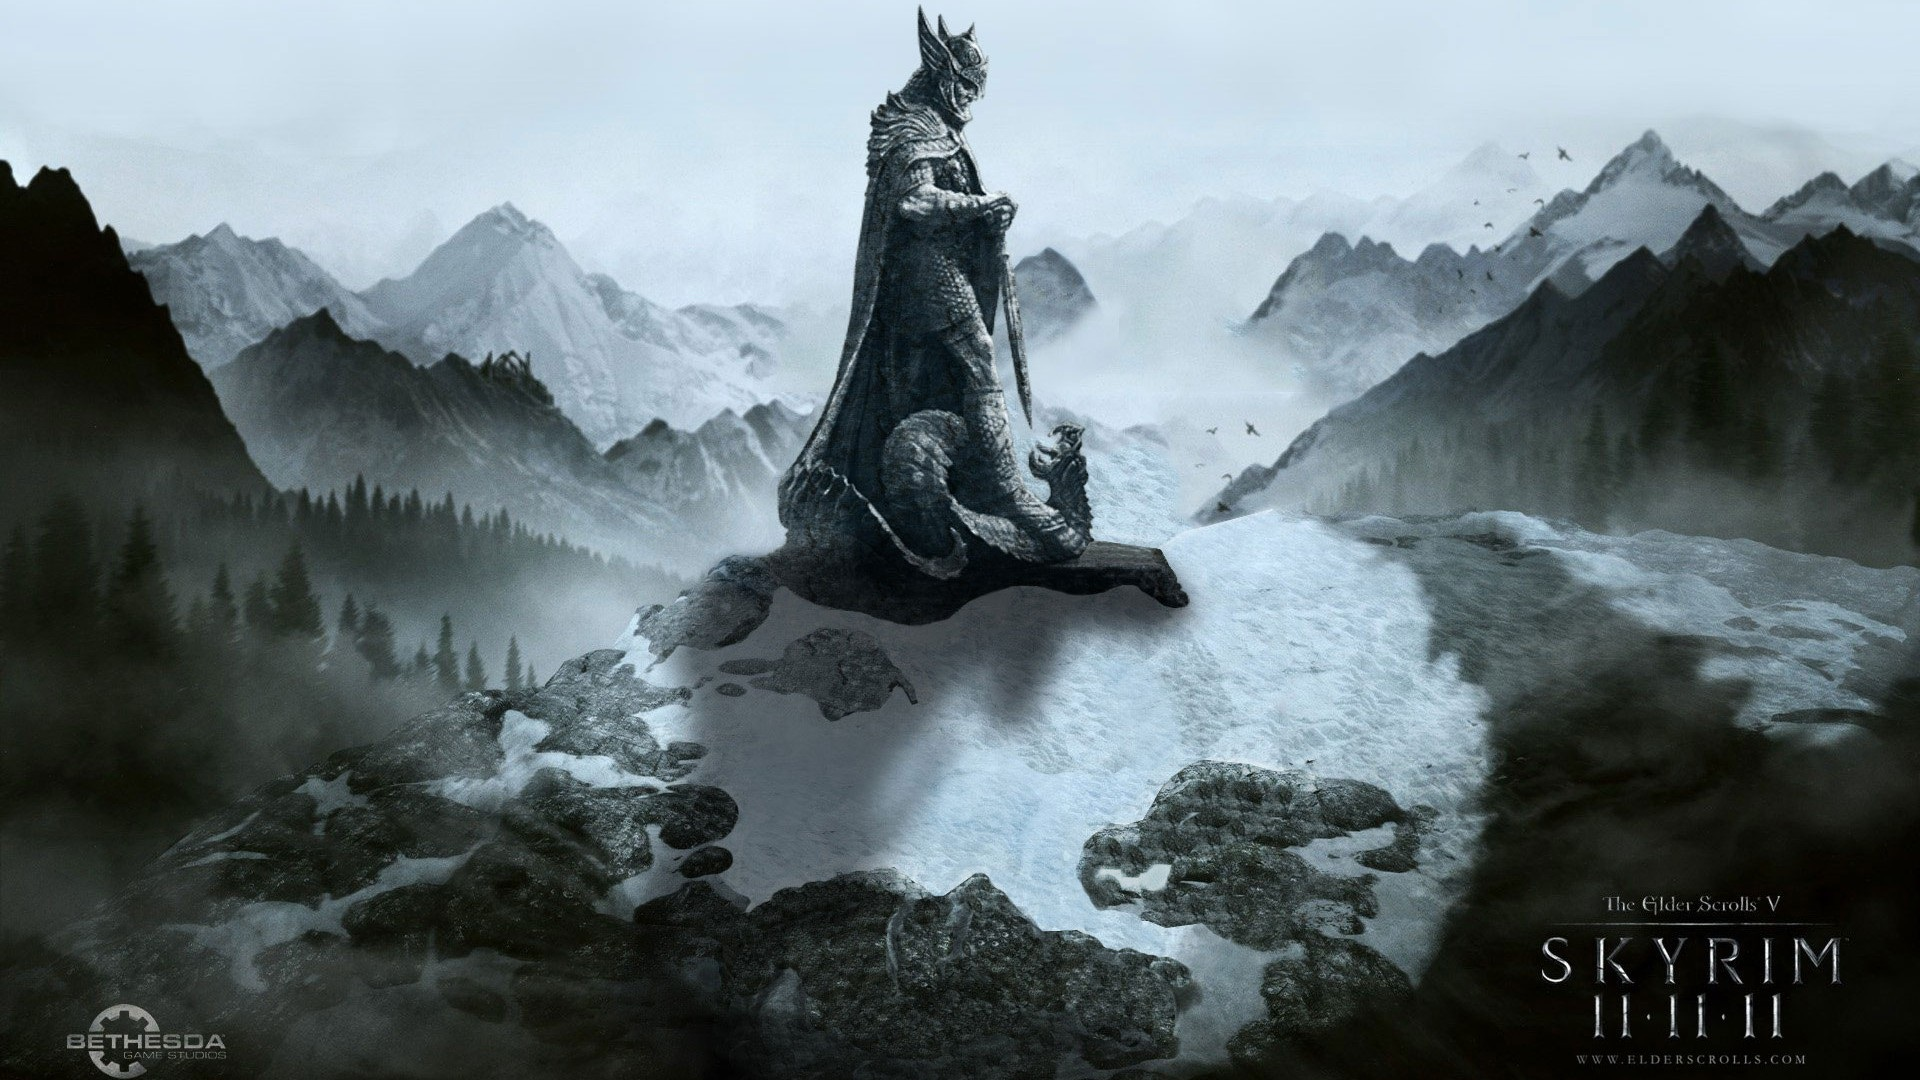 Abstract Skyrim Desktop Wallpaper 2560×1600 Wallpaper